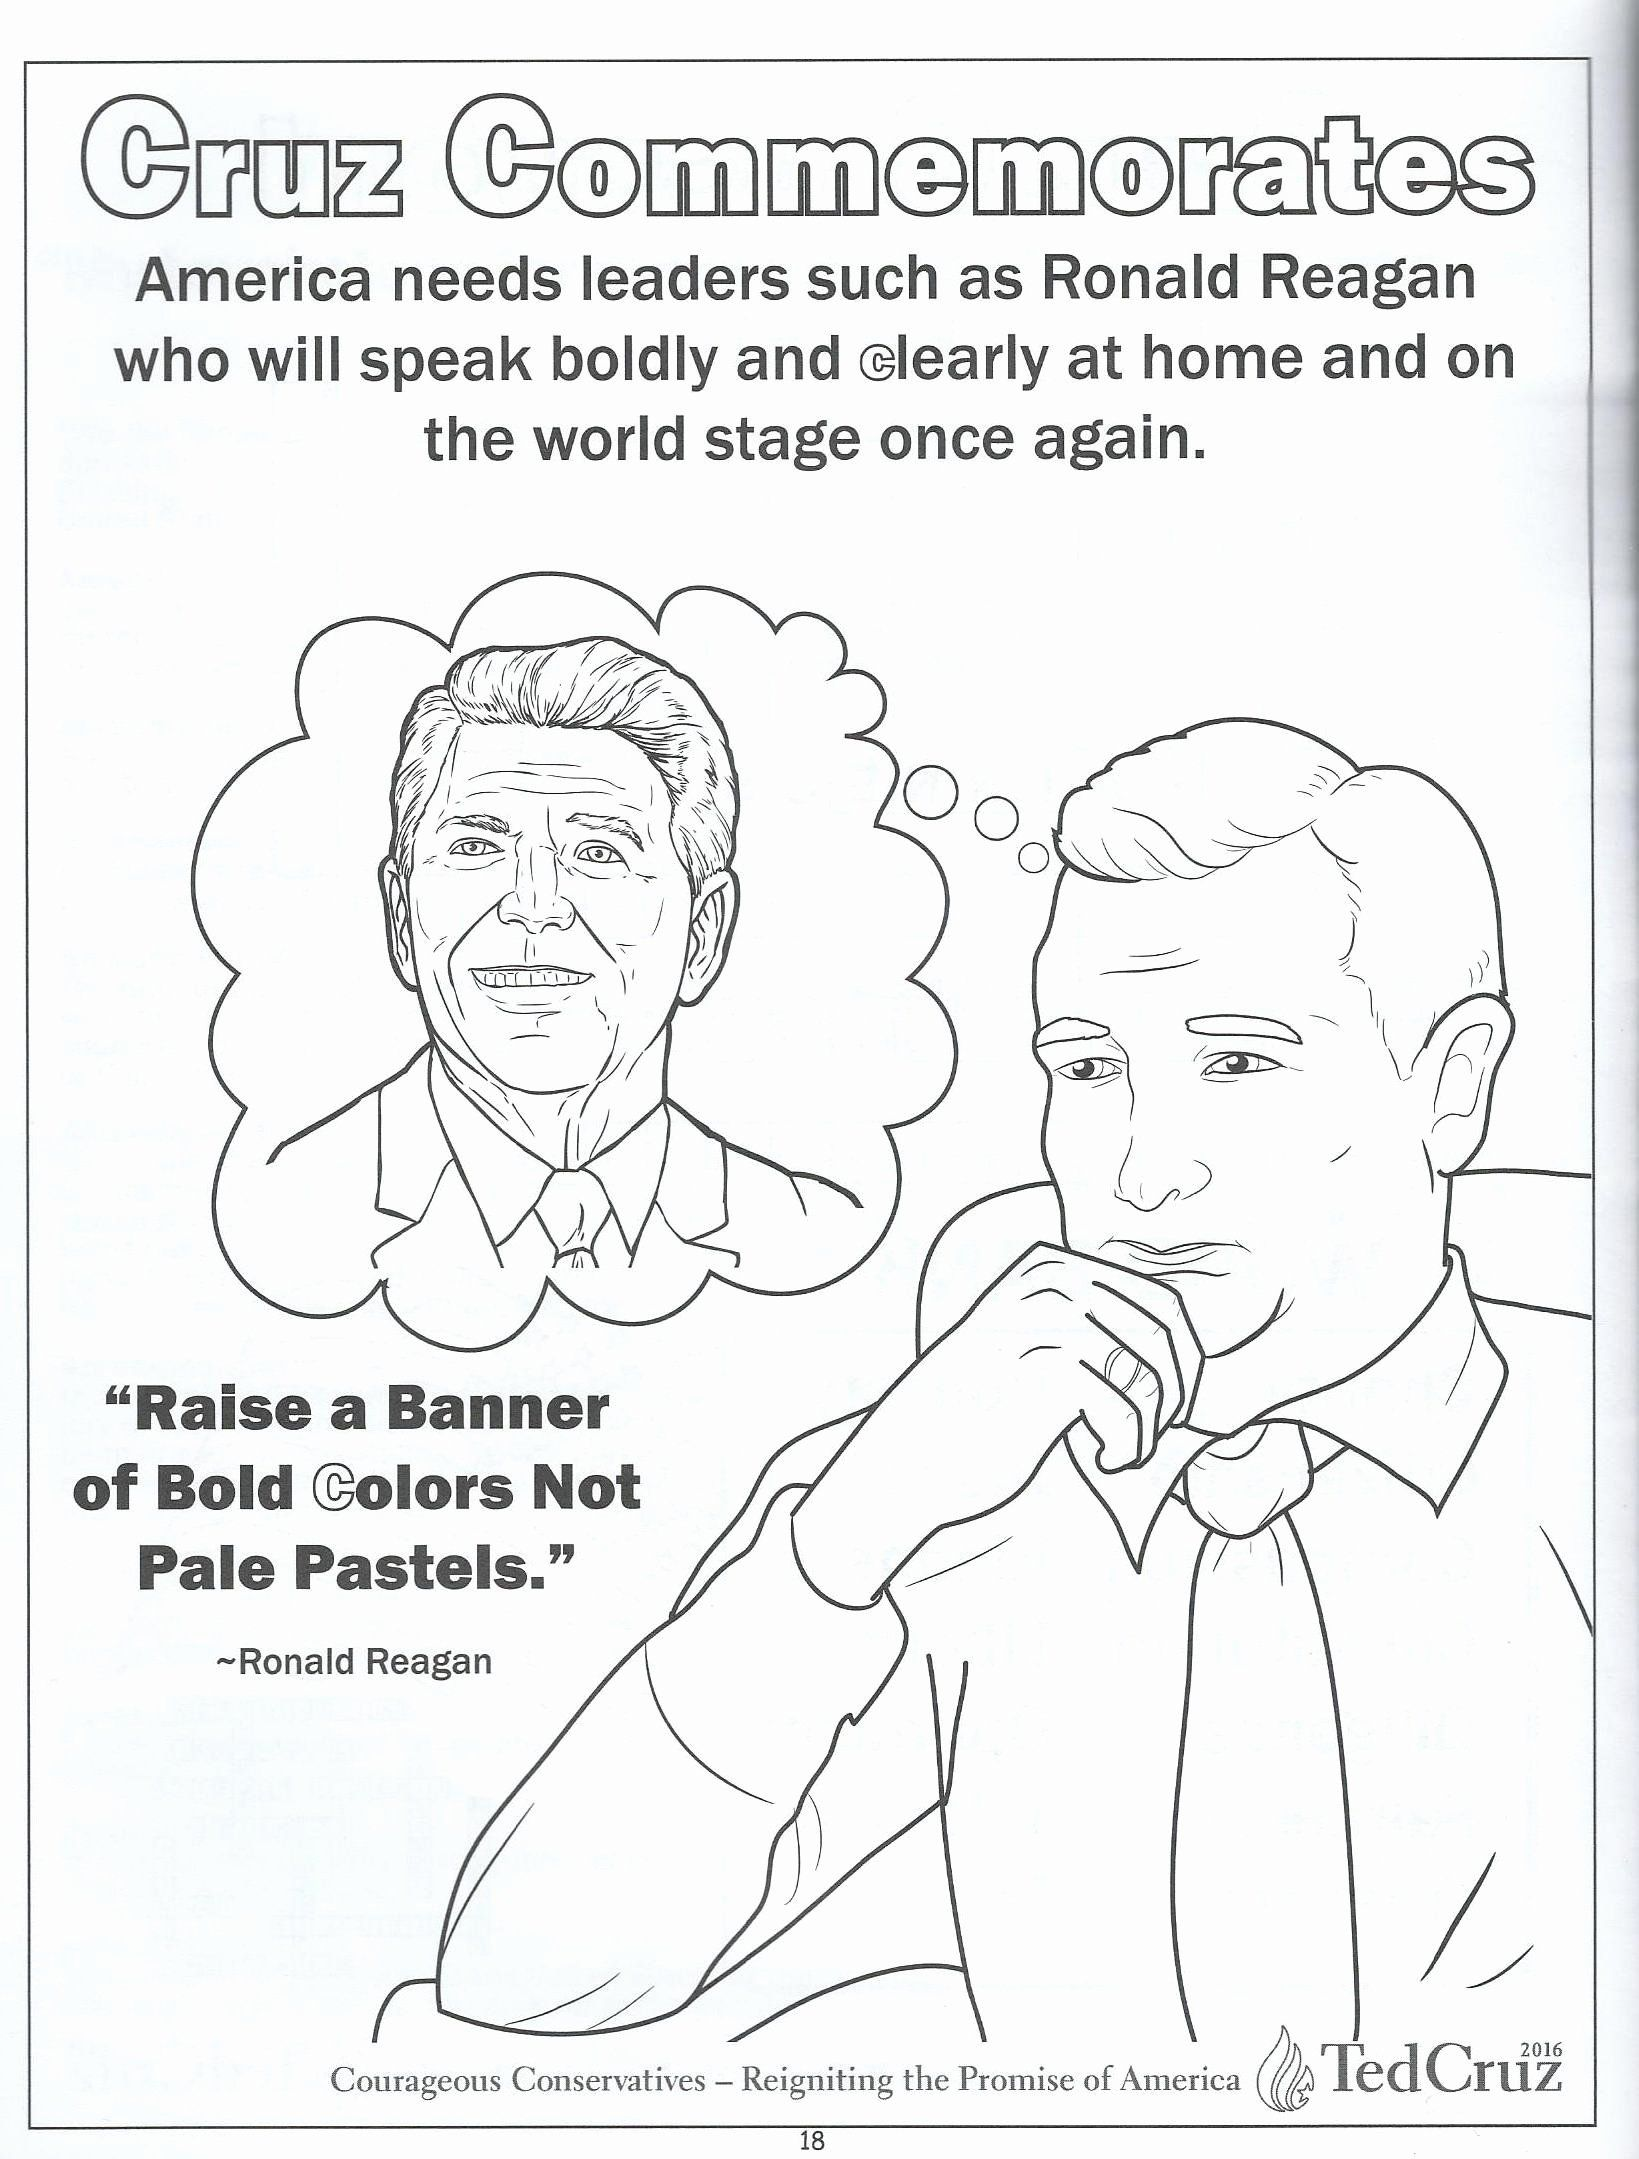 Ted Cruz Coloring Book Lovely We Review Ted Cruz S Ridiculous Children S Coloring Book Coloring Books Cat Coloring Book Kids Coloring Books